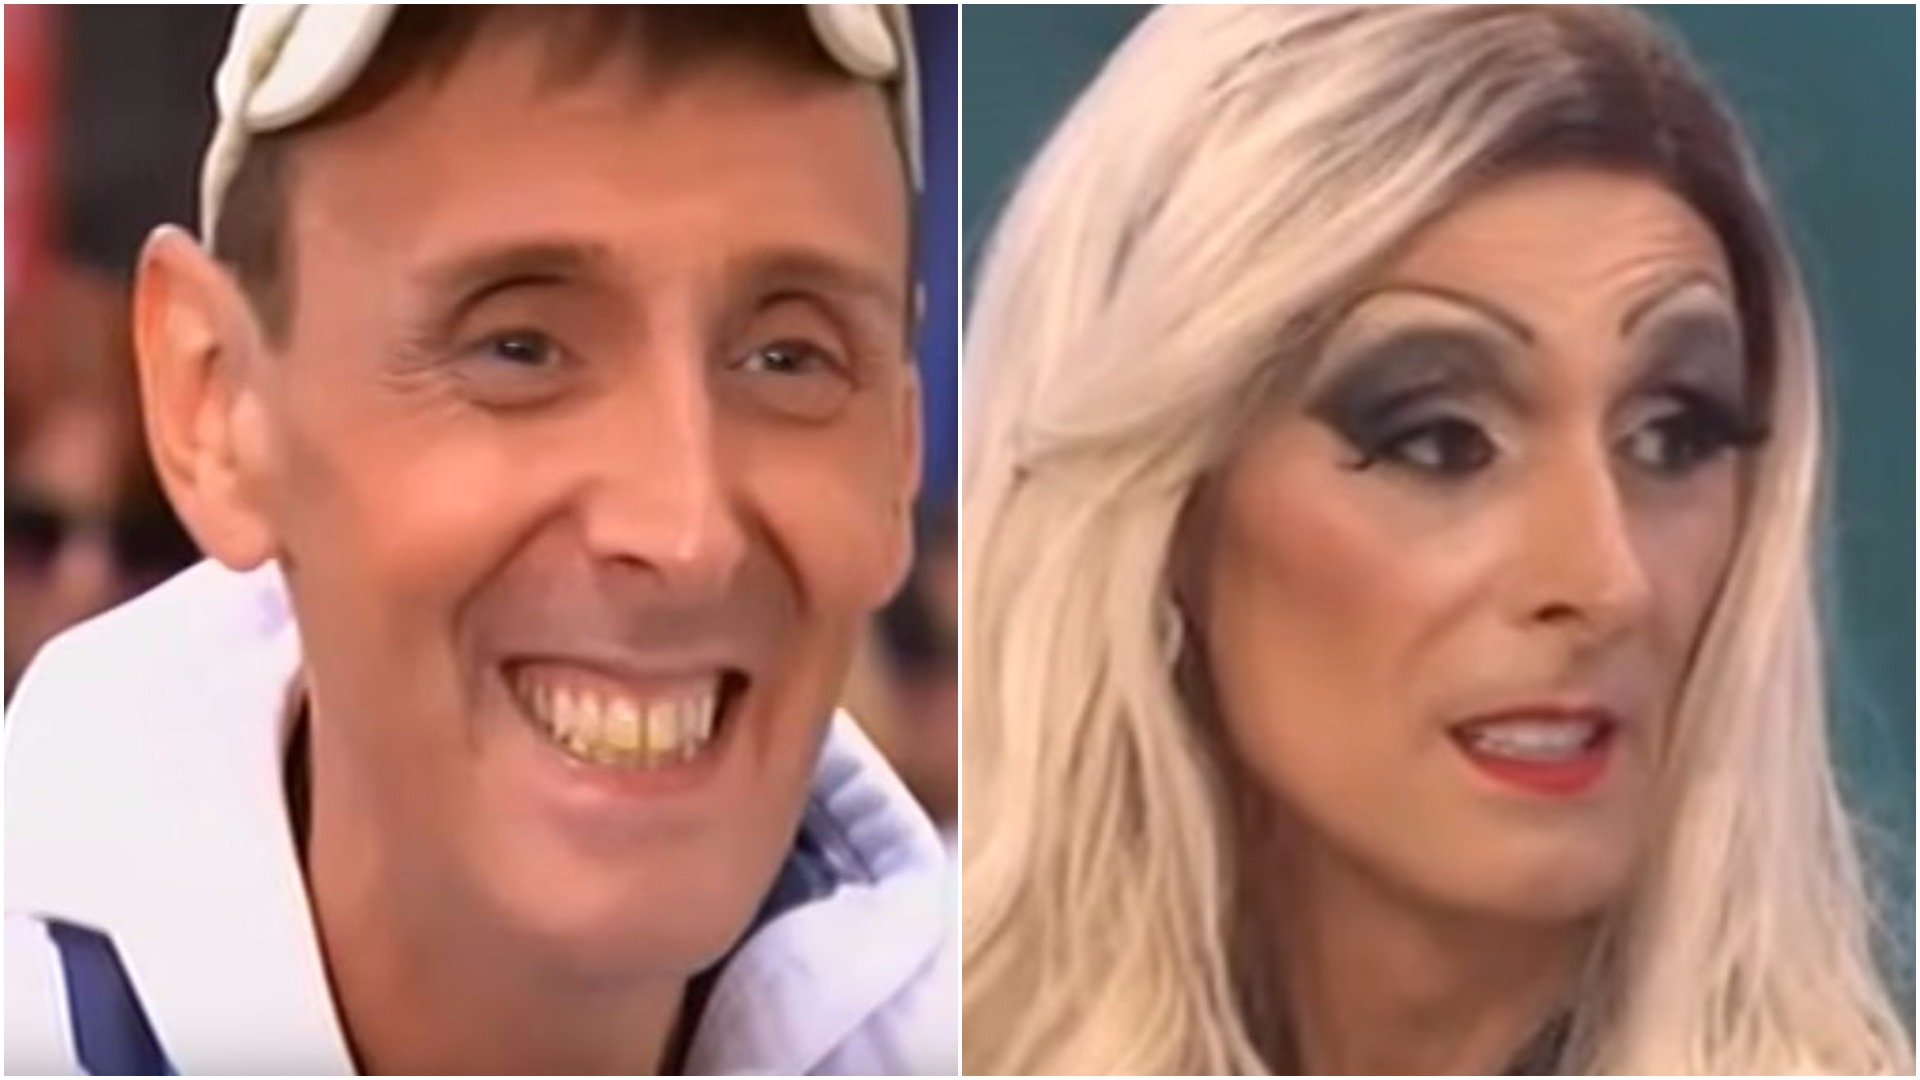 Remember 2011 X Factor reject Johnny Robinson? He just returned to TV as his 'revolutionary' female alter-ego